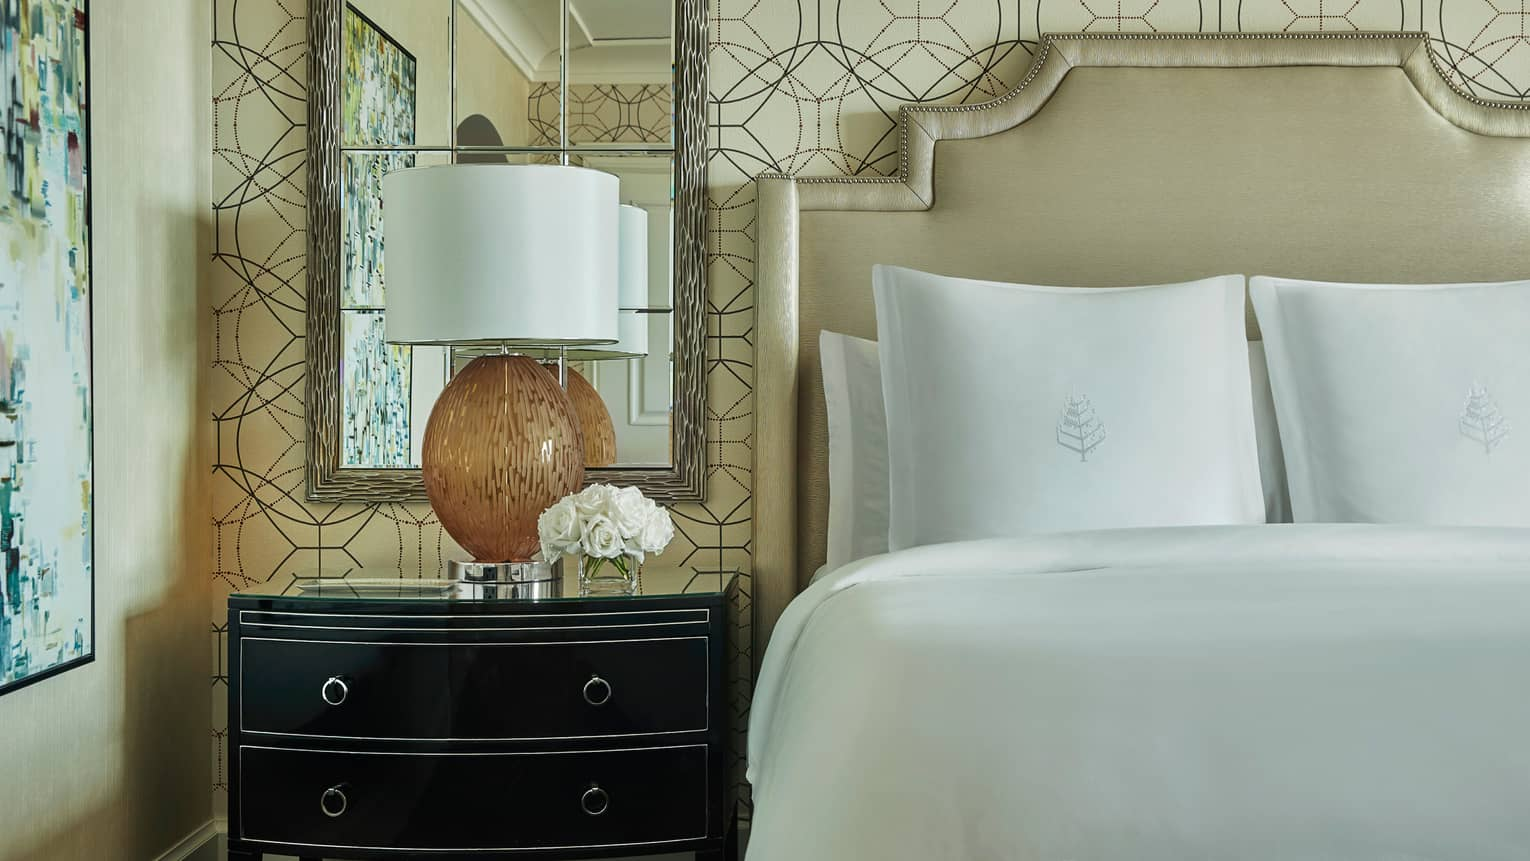 Close-up of Superior Room bed, padded headboard, mirror, lamp on nightstand